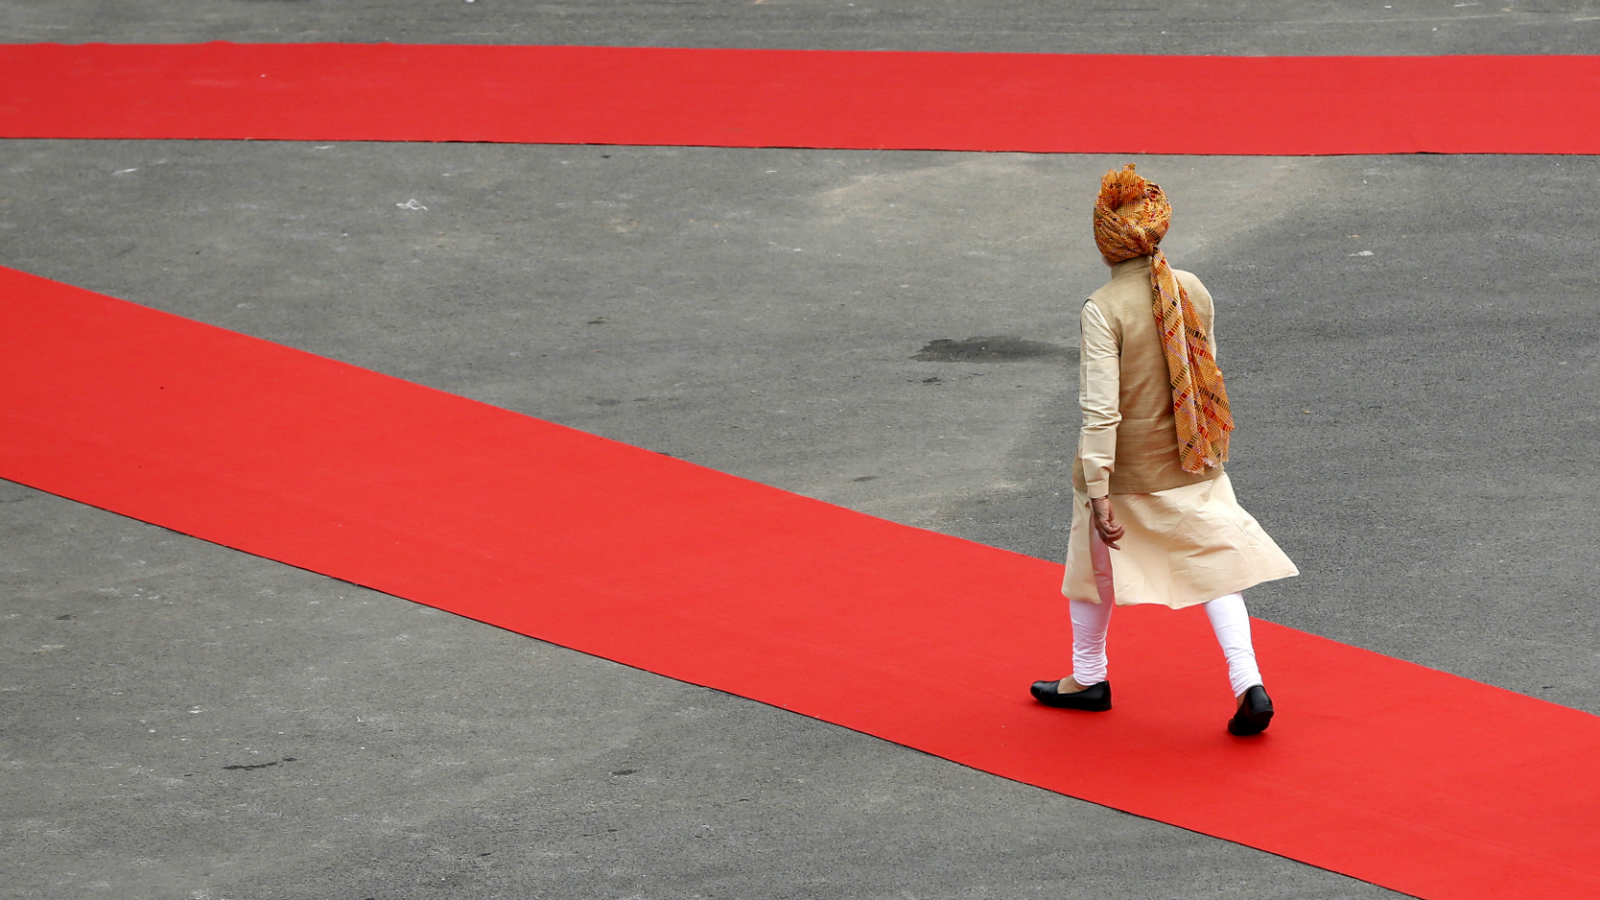 Indian prime minister Narendra Modi walks to inspect a guard of honour upon his arrival at the historic Red Fort during Independence Day celebrations in Delhi, India, August 15, 2015. Modi sought to shed an image that he governs for big business on Saturday, vowing to help the poor in an annual speech aimed at bolstering popularity rather than tackling setbacks to his economic reform plans.